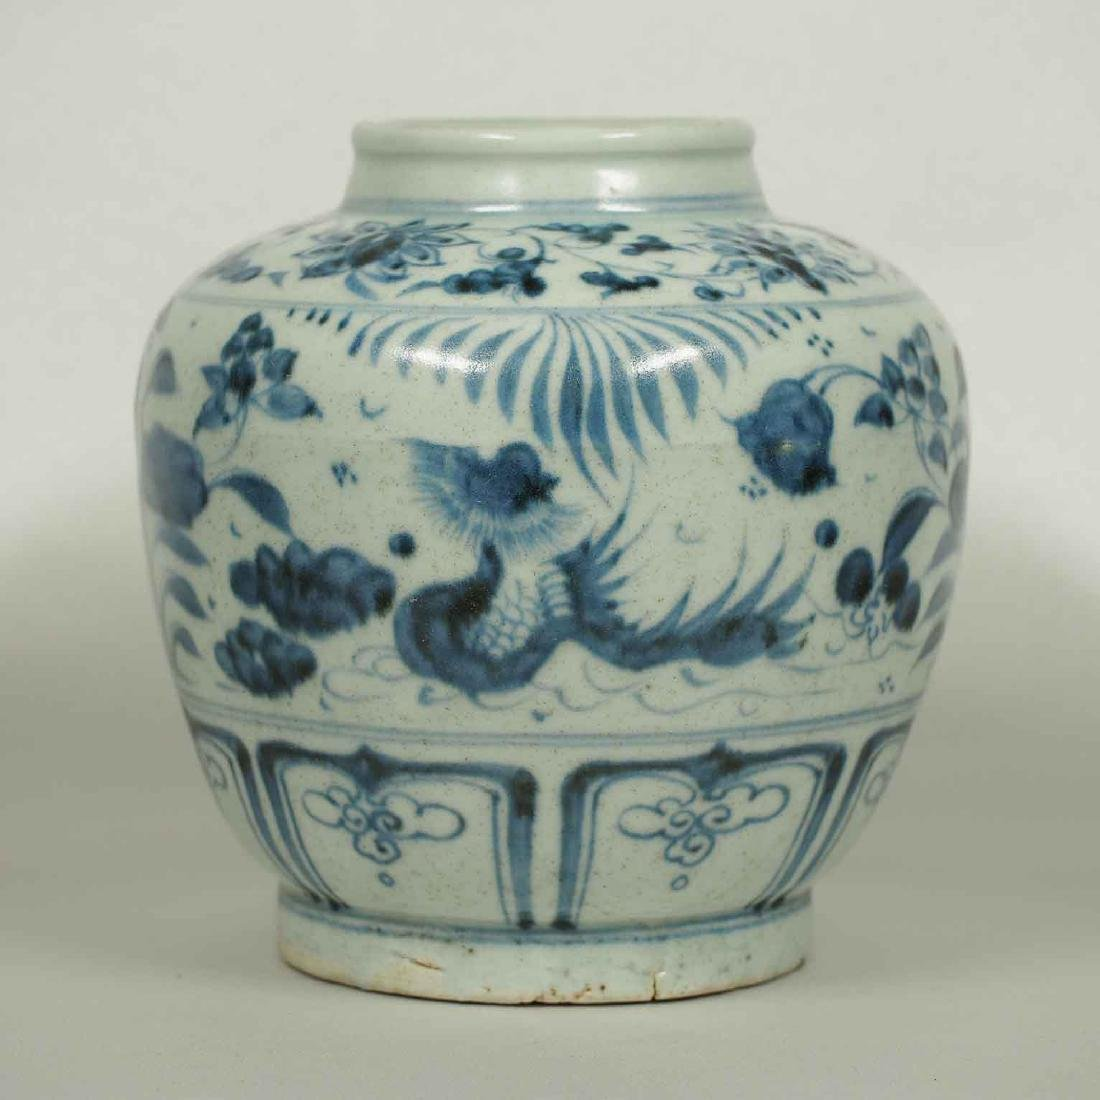 Jar with Mandarin Ducks, early Ming Dynasty